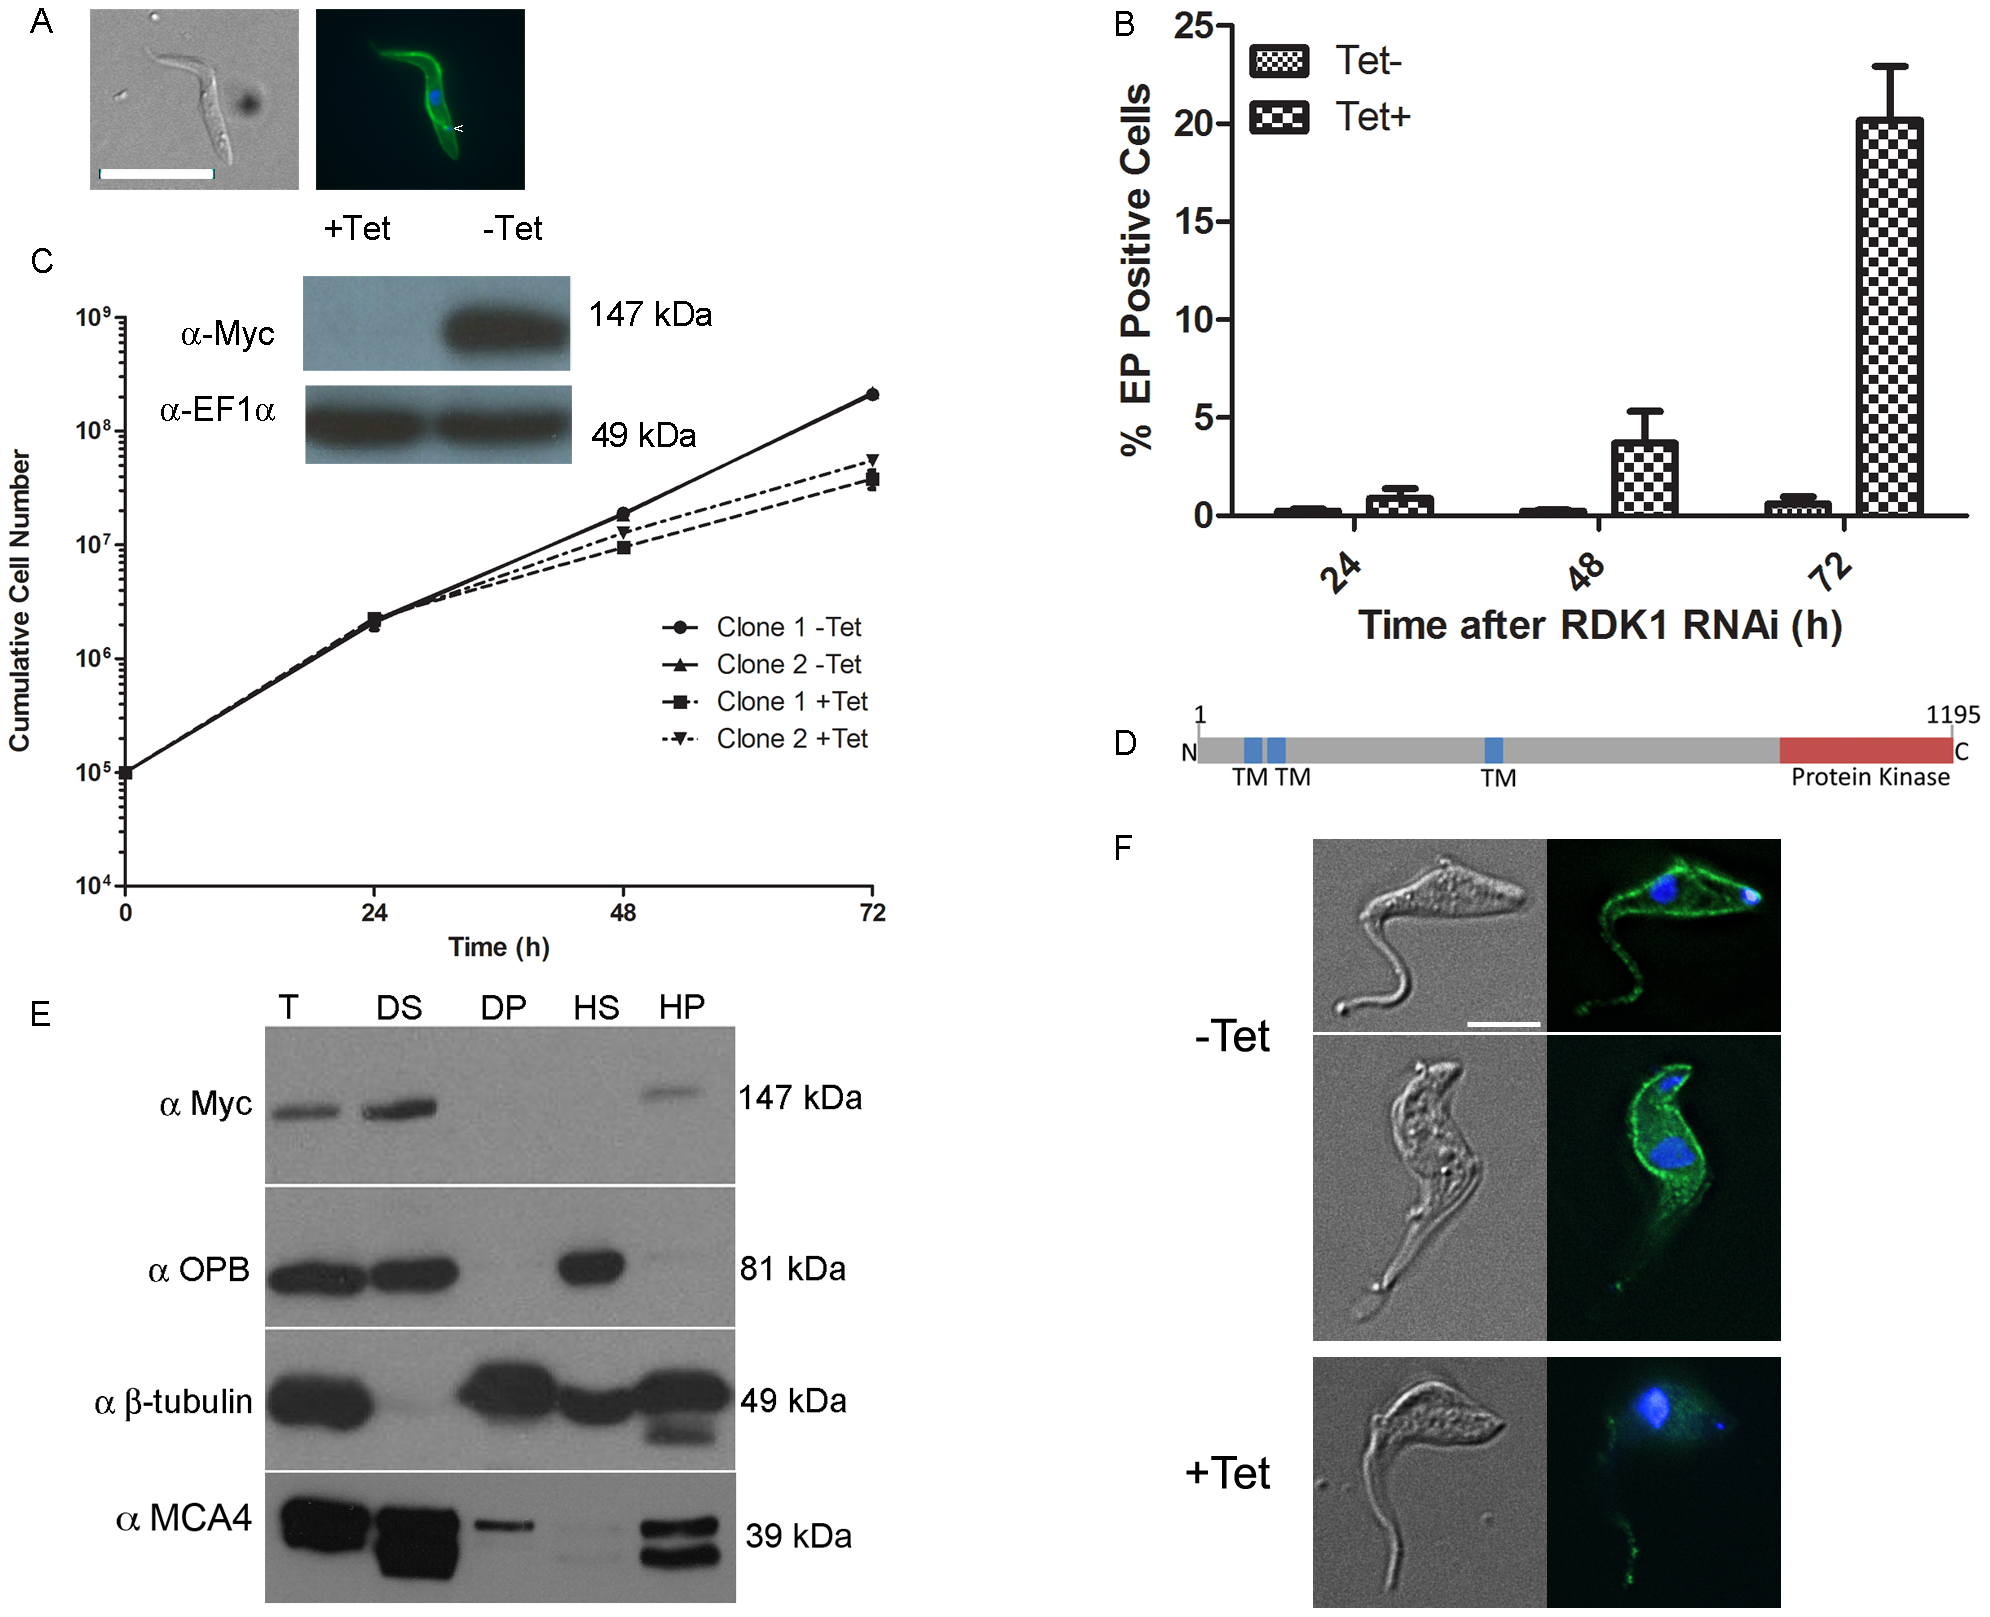 RDK1 is a repressor of BSF to PCF differentiation.